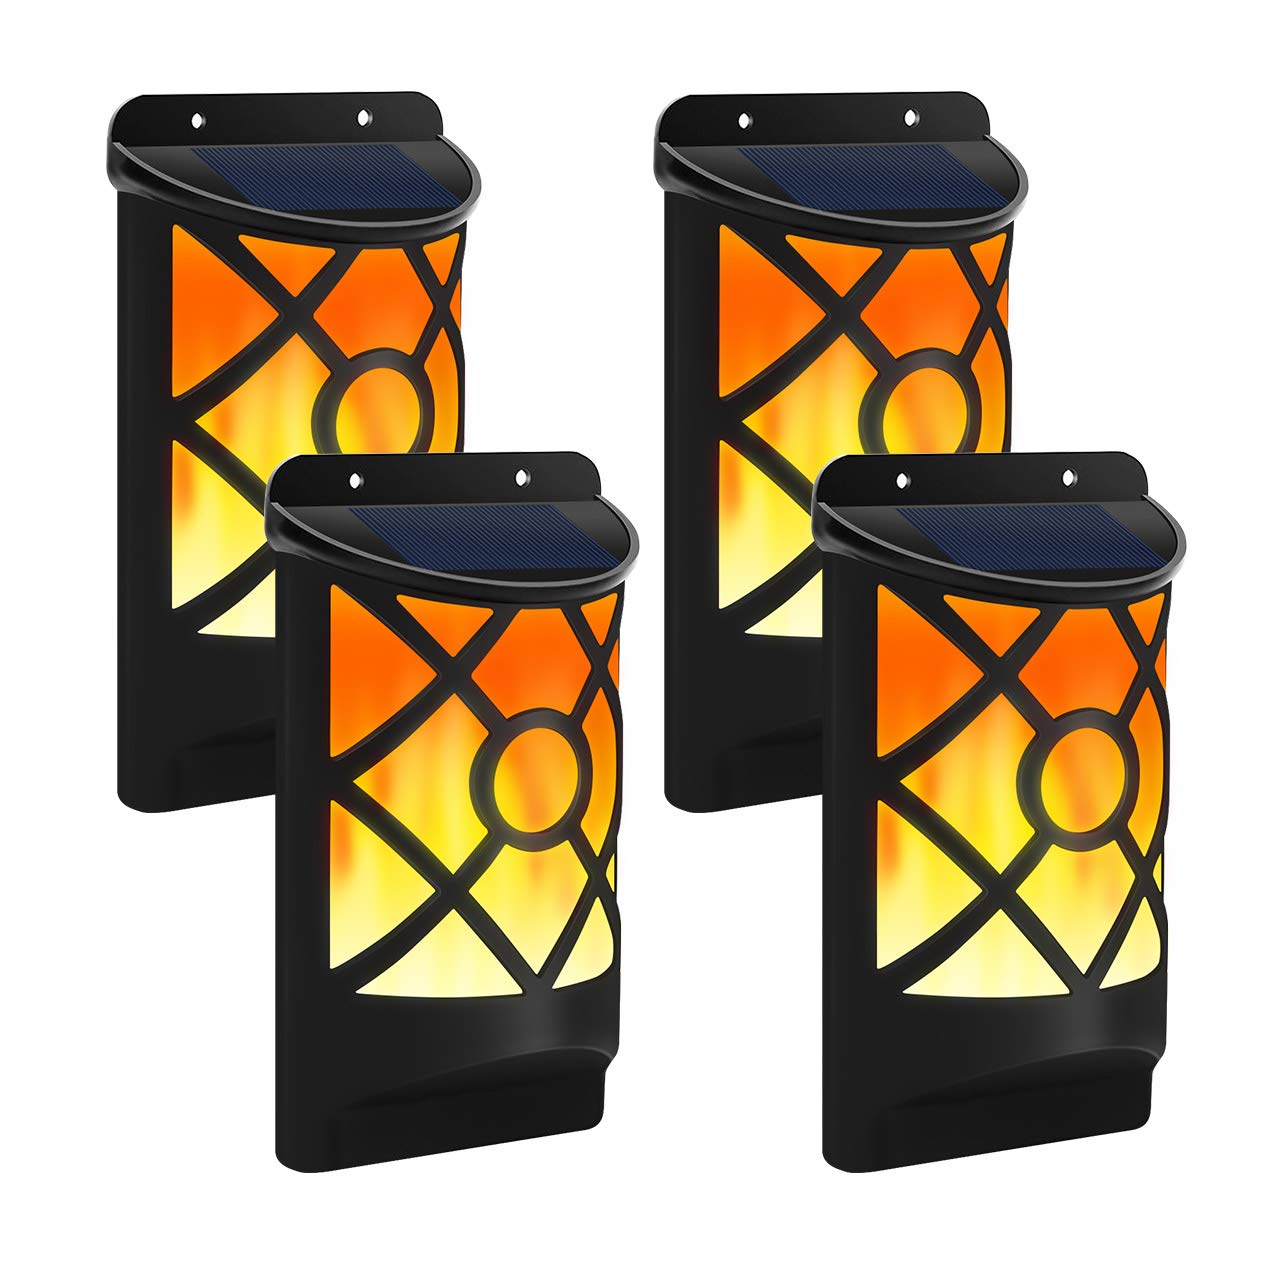 Solar Flame Lights Outdoor, Aityvert Waterproof Flickering Flame Solar Lights Dark Sensor Auto On/Off 66 LED Solar Powered Wall Mounted Night Lights Lattice Design for Pathway Patio Deck Yard 4 Packs by Aityvert